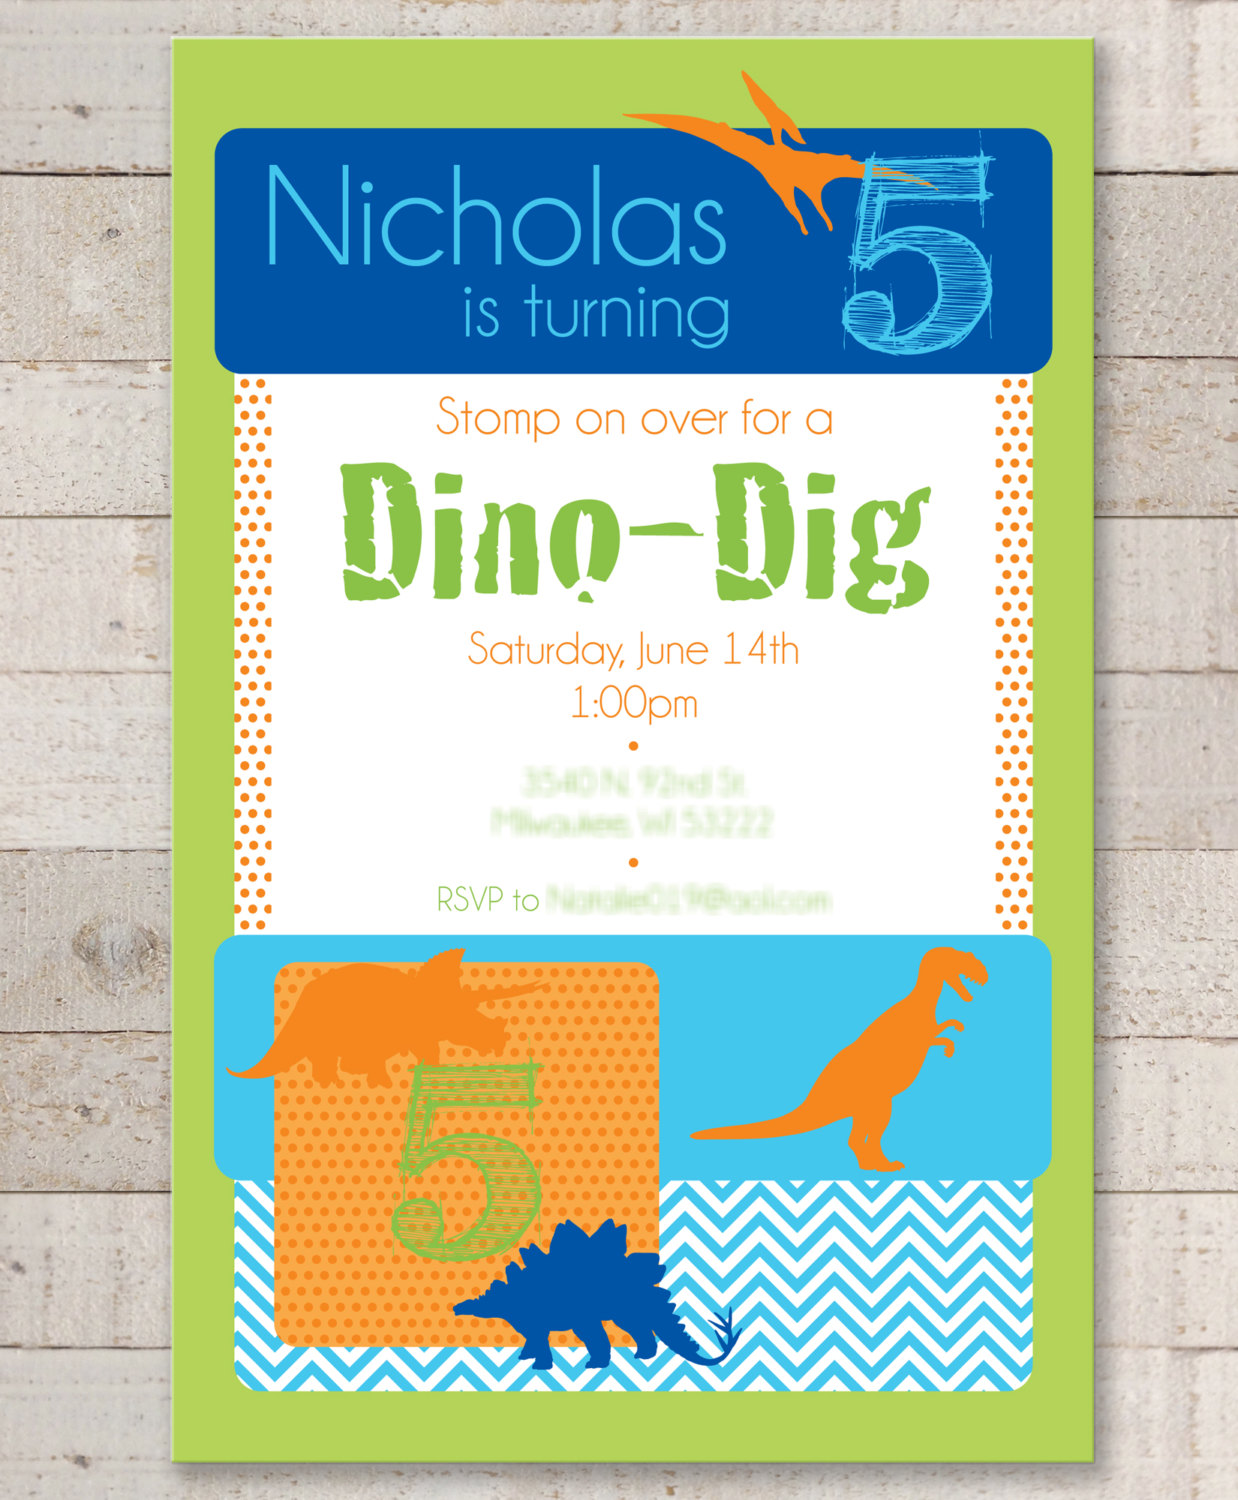 dinosaur birthday invitations party invites boys 1st birthday dinosaur theme birthday party invitations party decorations set of 10